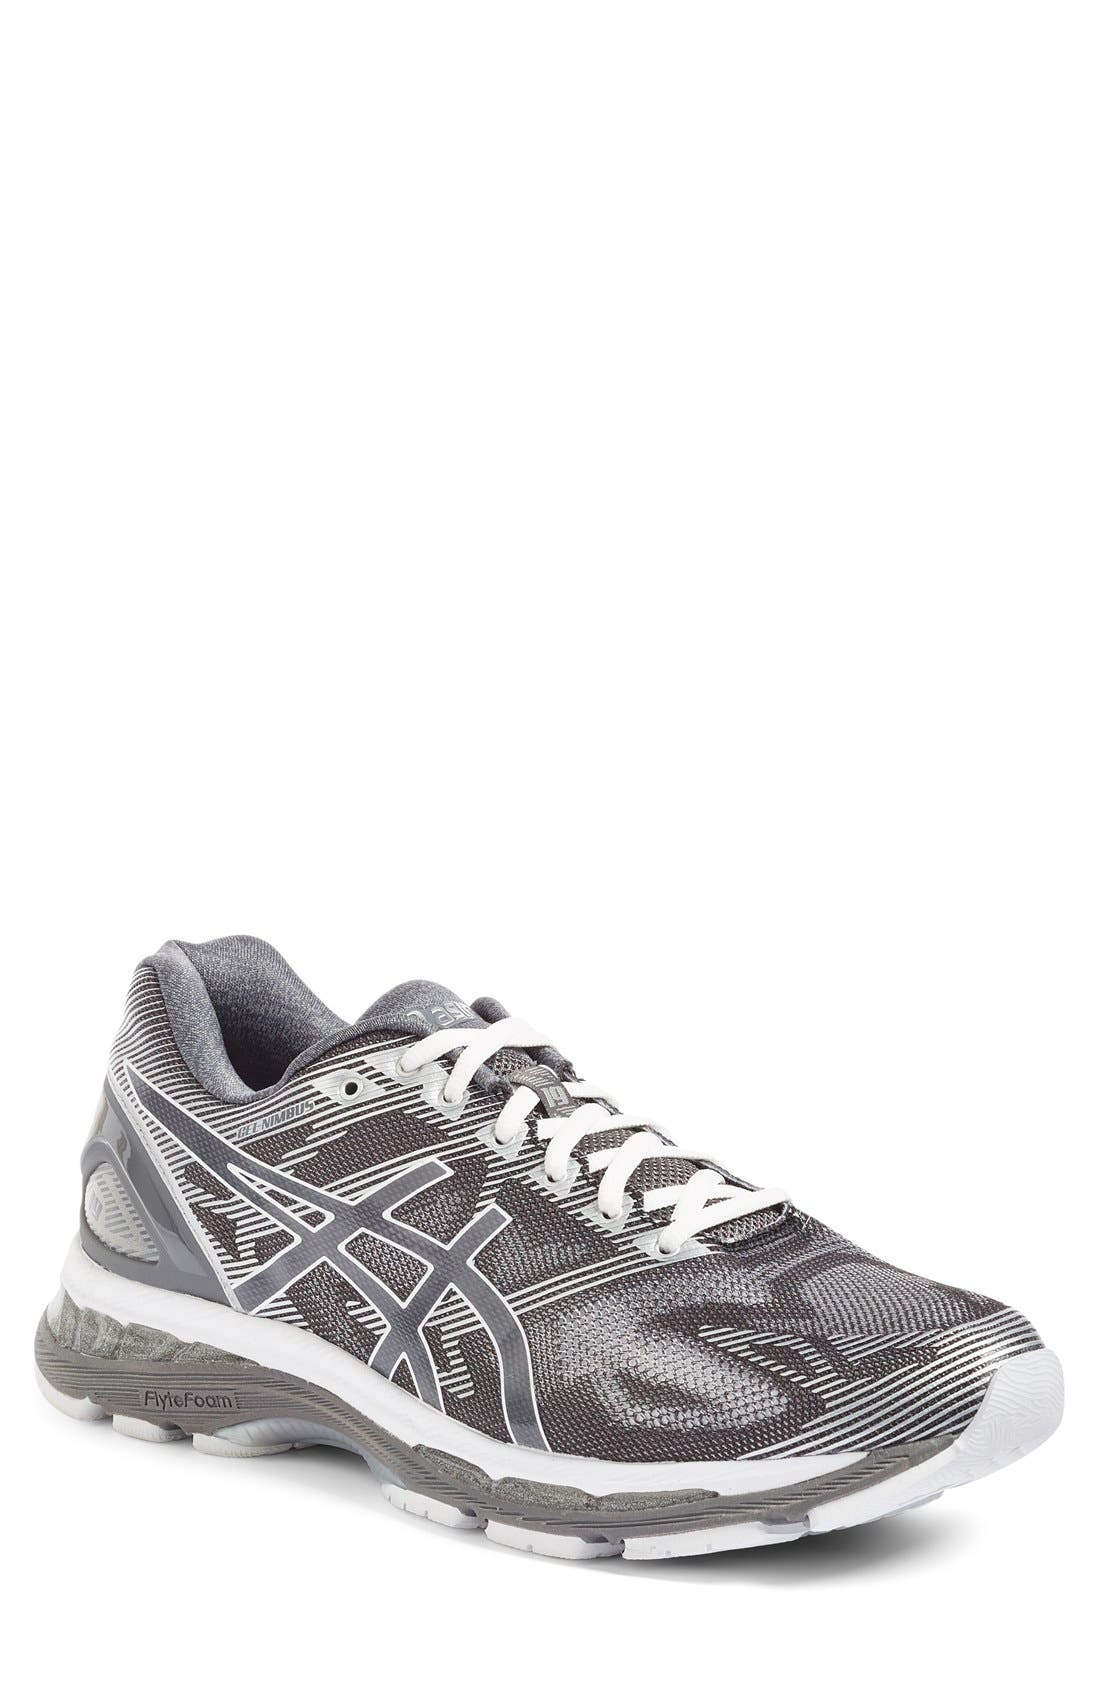 GEL<sup>®</sup>-Nimbus 19 Running Shoe,                             Main thumbnail 1, color,                             Carbon/ White/ Silver